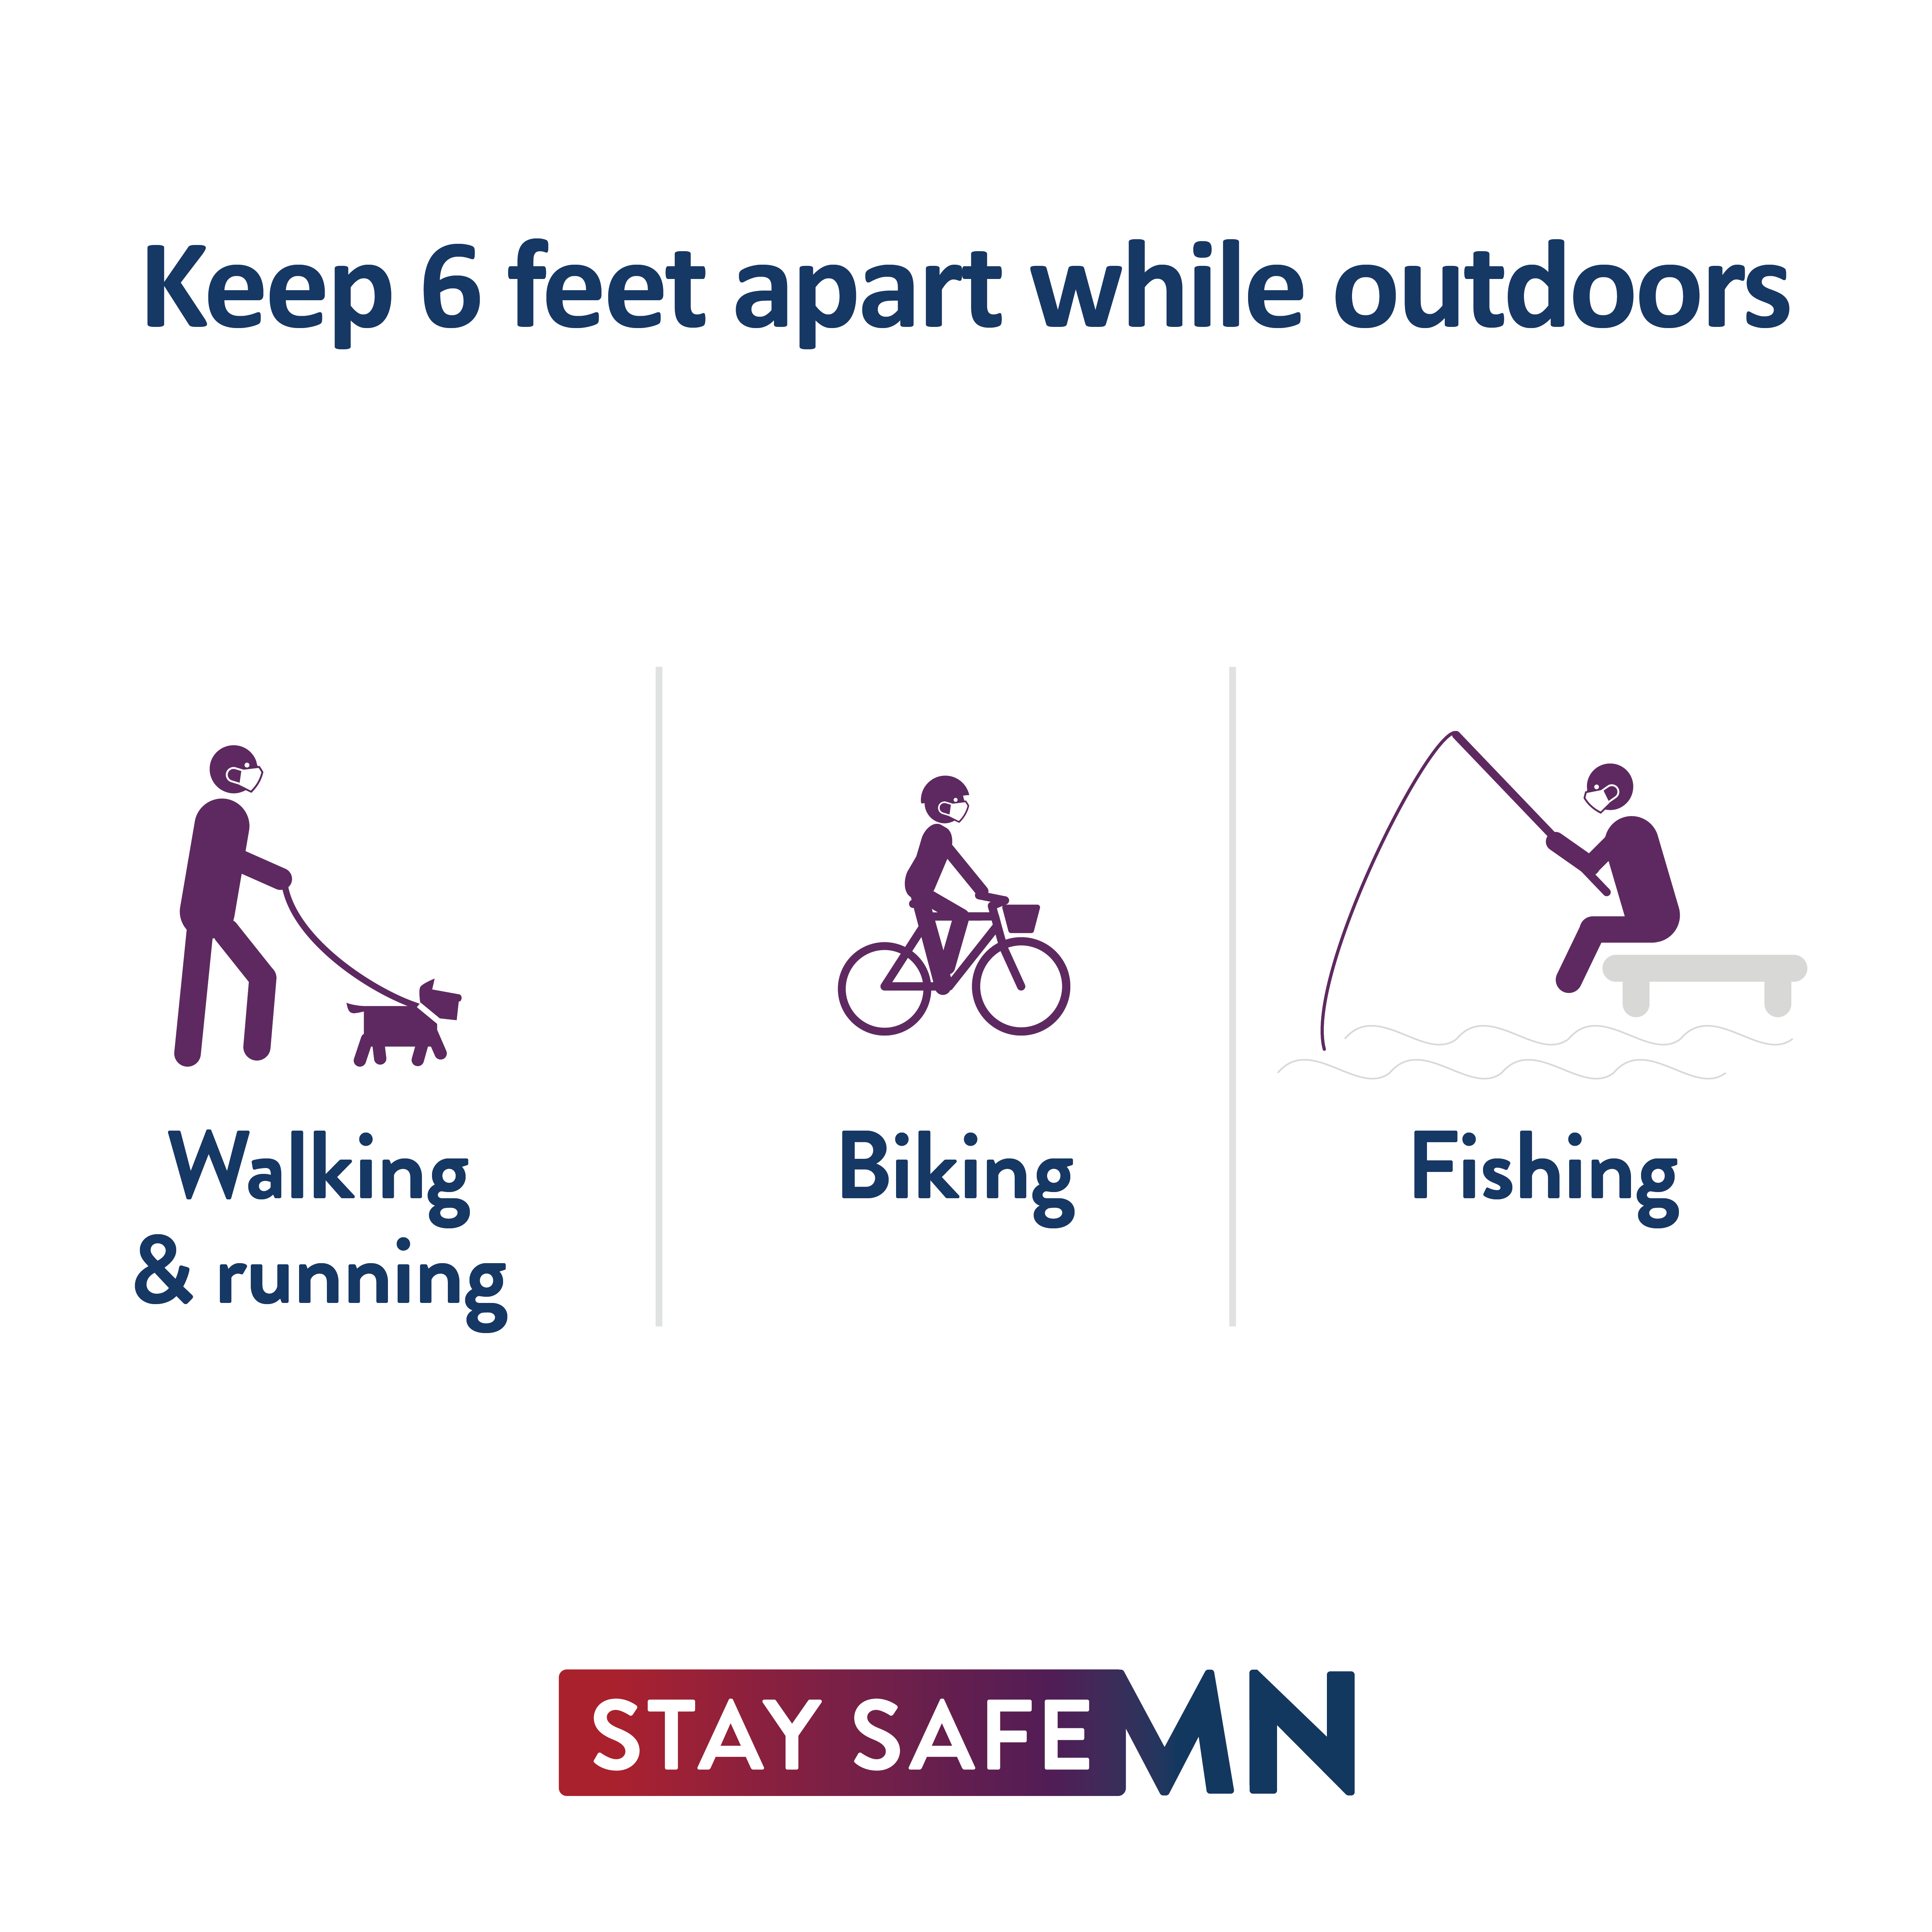 Keep 6 feet apart while outdoors. Walking & running. Biking. Fishing.